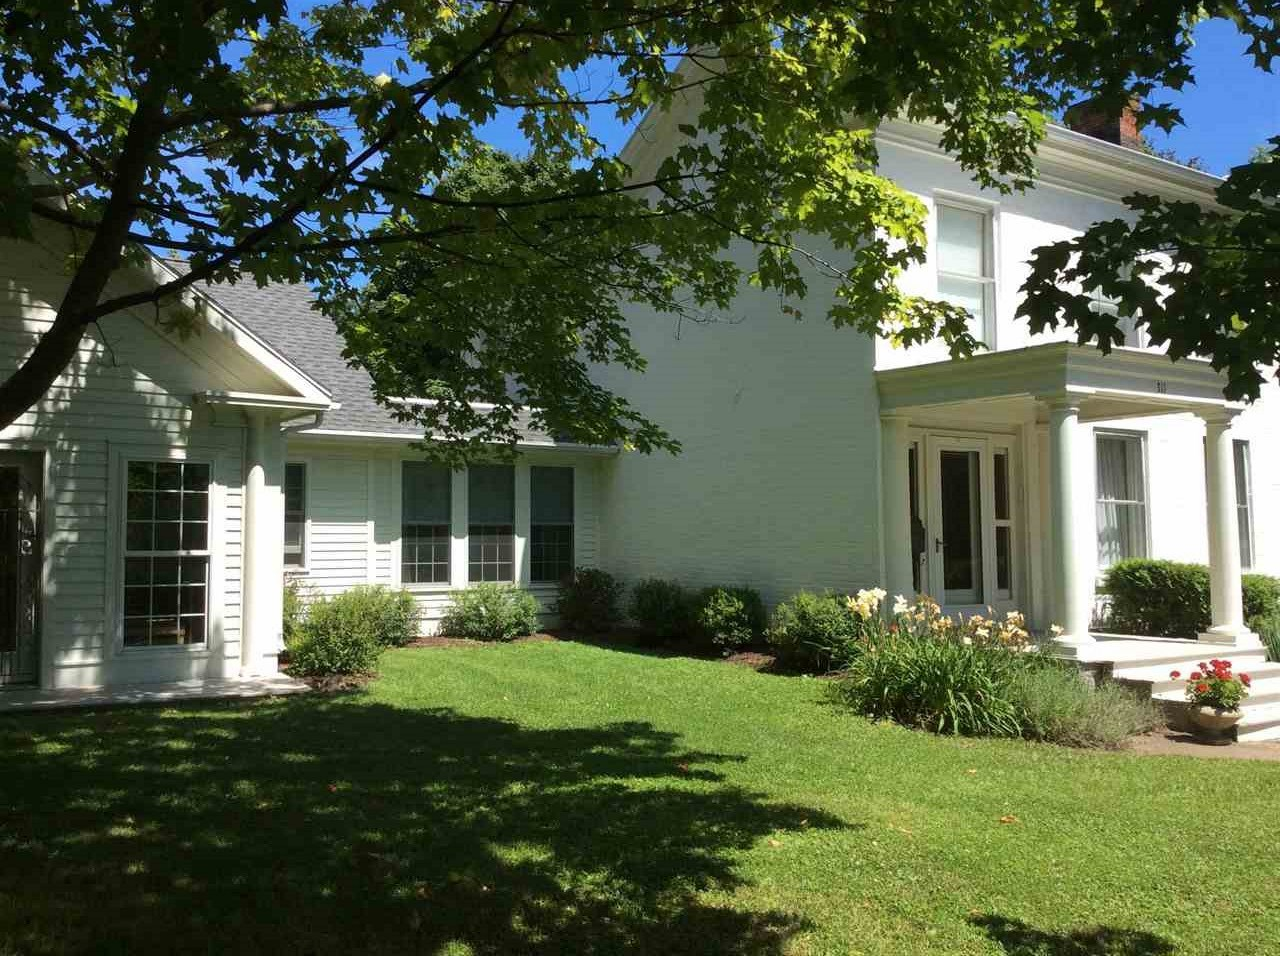 311 High St, Mineral Point, WI 53565